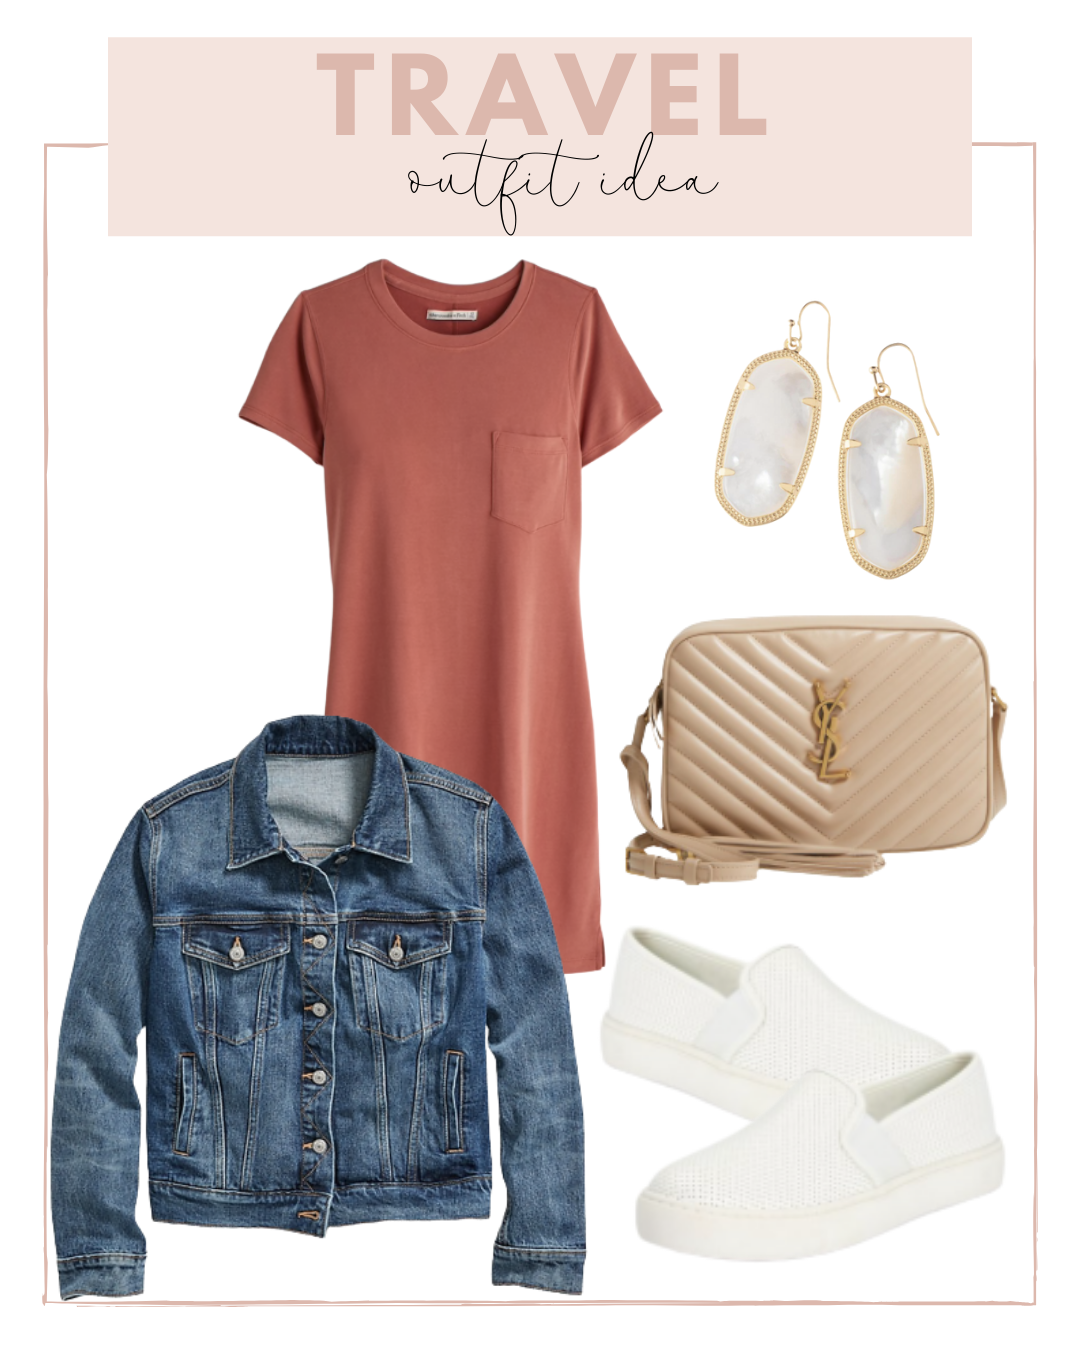 Casual Travel outfit ideas